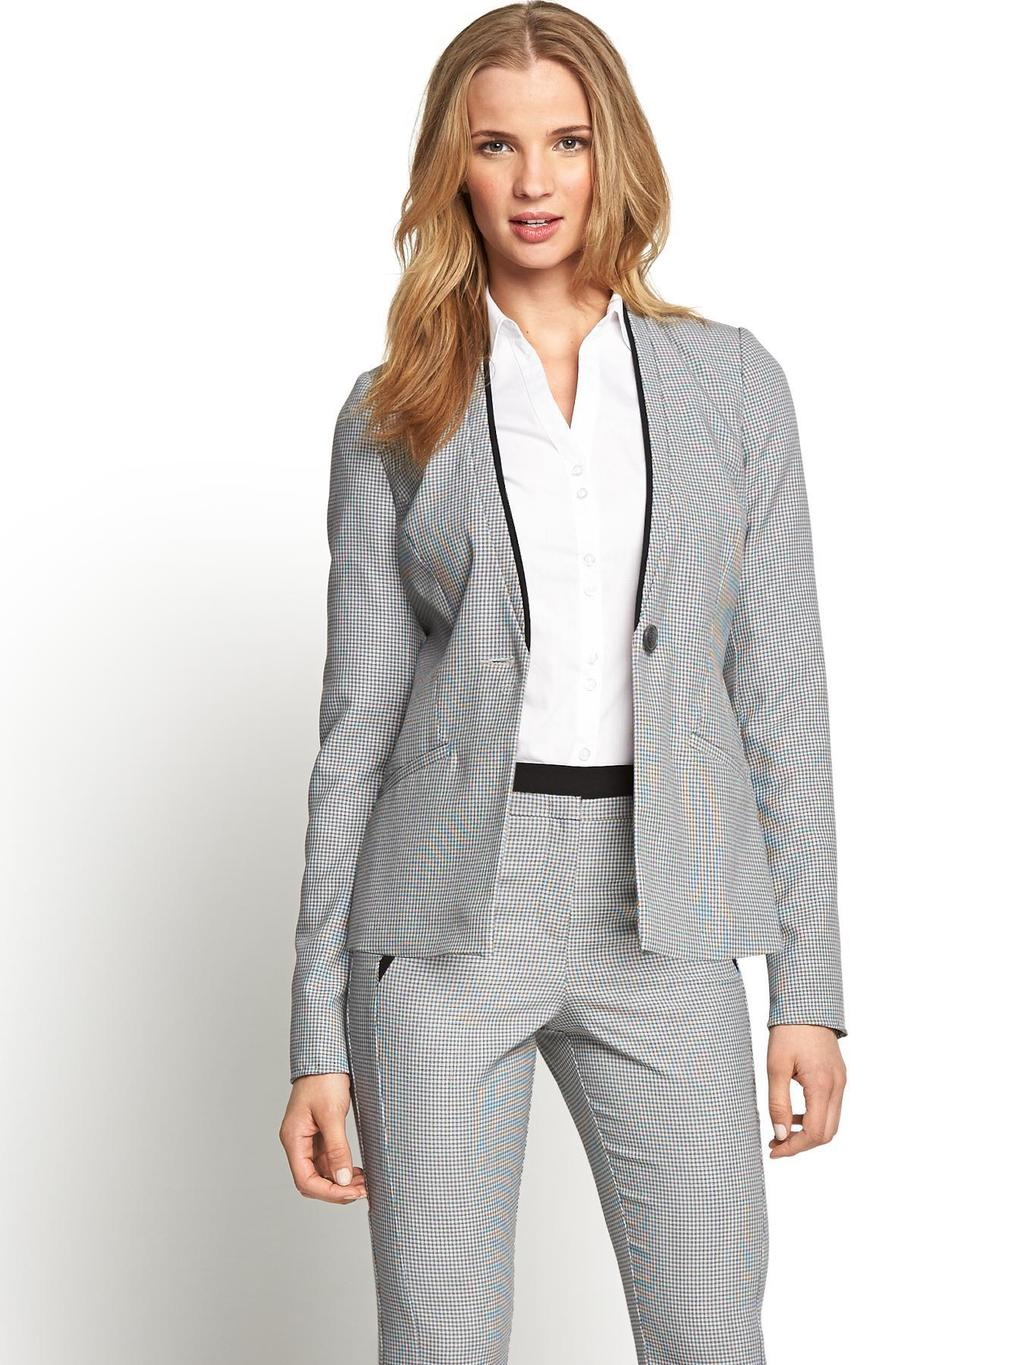 Textured Fashion Jacket, Grey - pattern: plain; style: single breasted blazer; collar: standard lapel/rever collar; predominant colour: light grey; secondary colour: black; occasions: work, creative work; length: standard; fit: tailored/fitted; fibres: polyester/polyamide - stretch; sleeve length: long sleeve; sleeve style: standard; collar break: low/open; pattern type: fabric; texture group: woven light midweight; season: s/s 2014